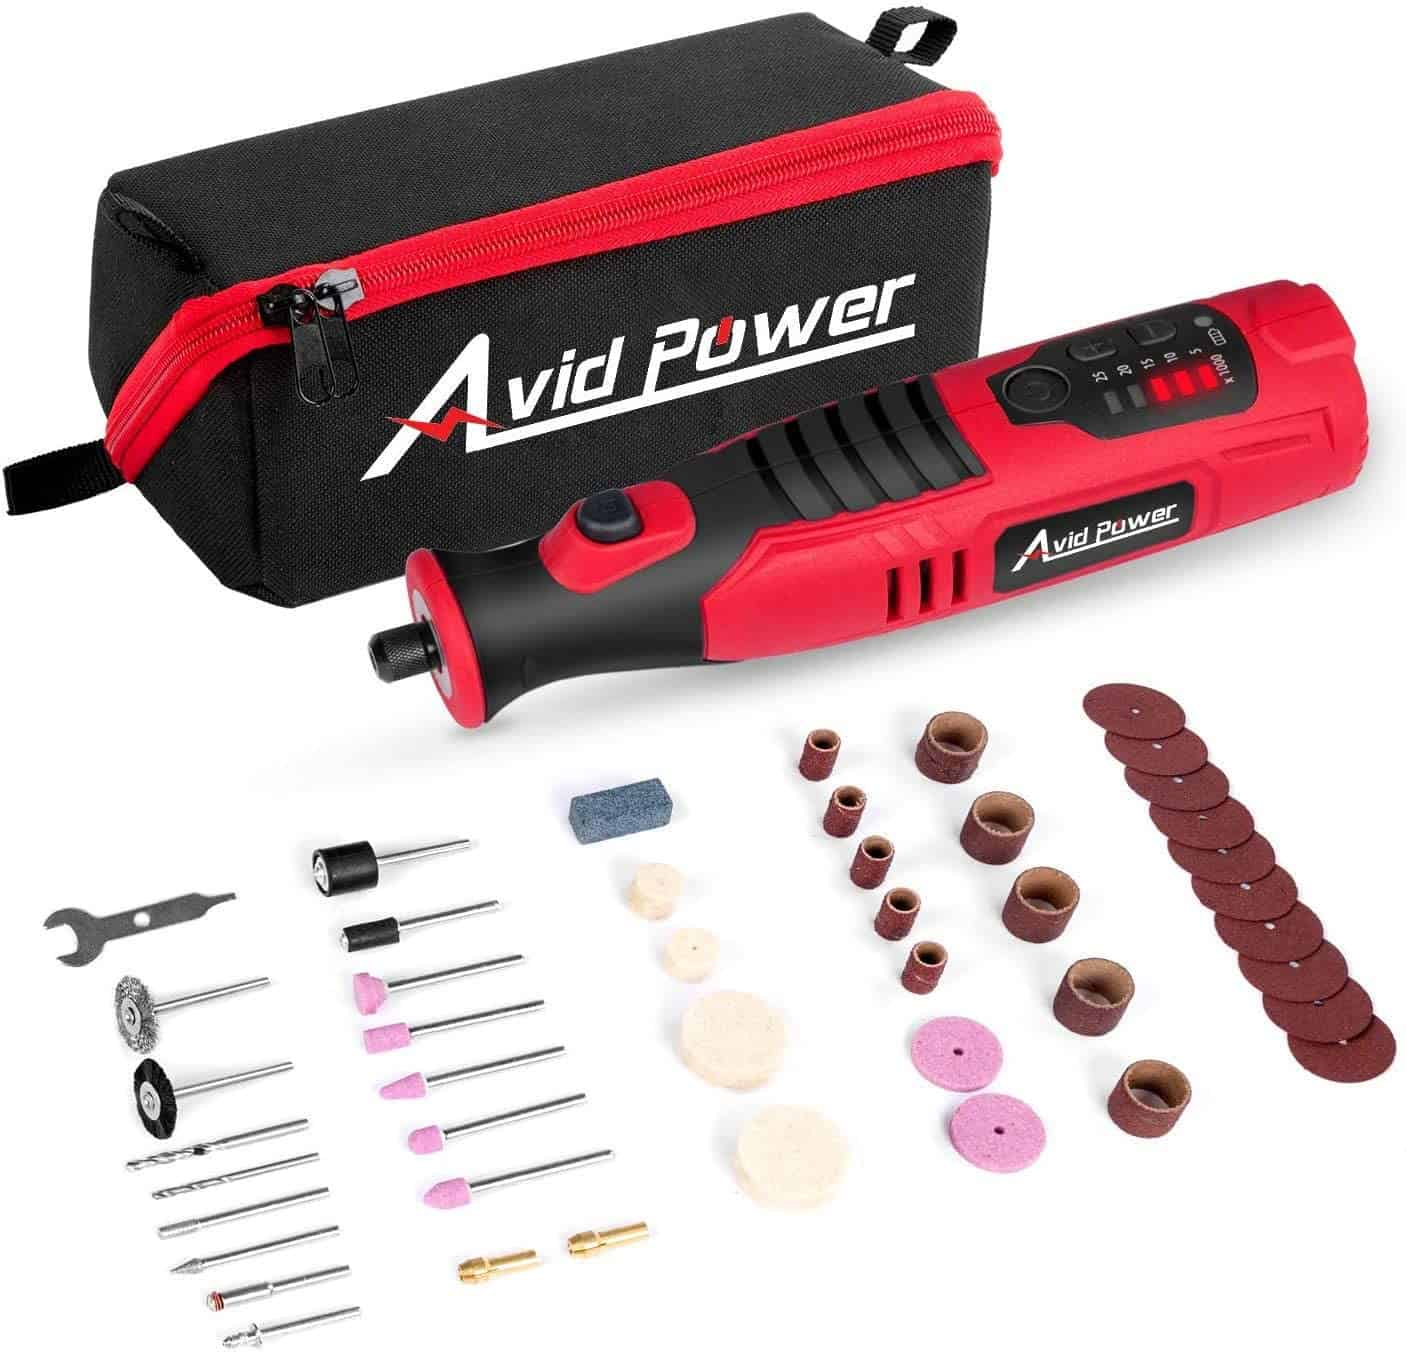 Best budget cordless rotary tool complete kit- AVID POWER with 2.0 Ah 8V Li-ion Battery